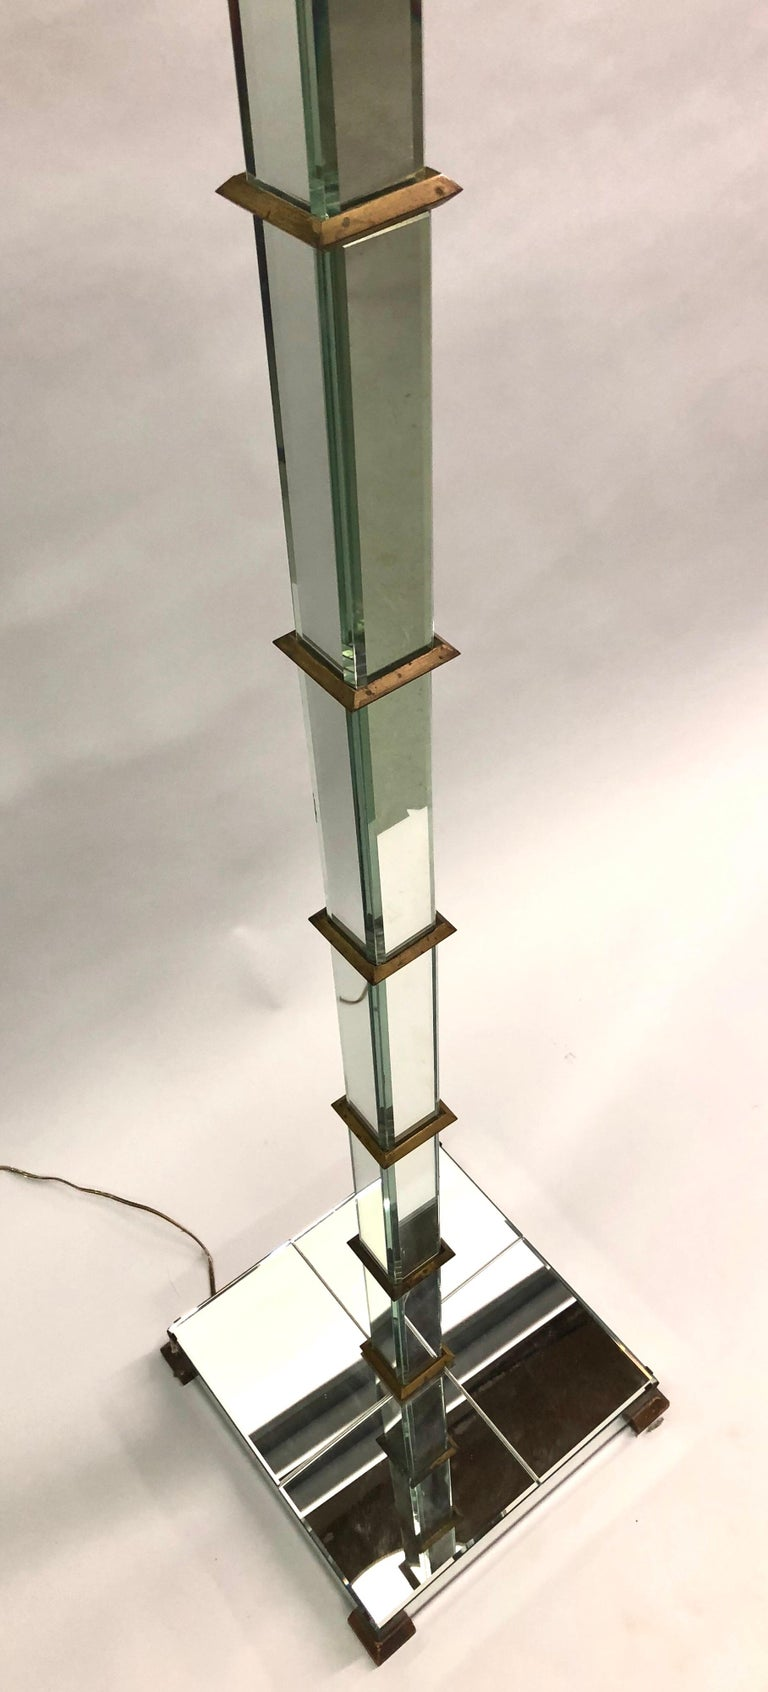 20th Century French Art Deco / Midcentury Mirrored Floor Lamp Serge Roche & Jansen Attributed For Sale